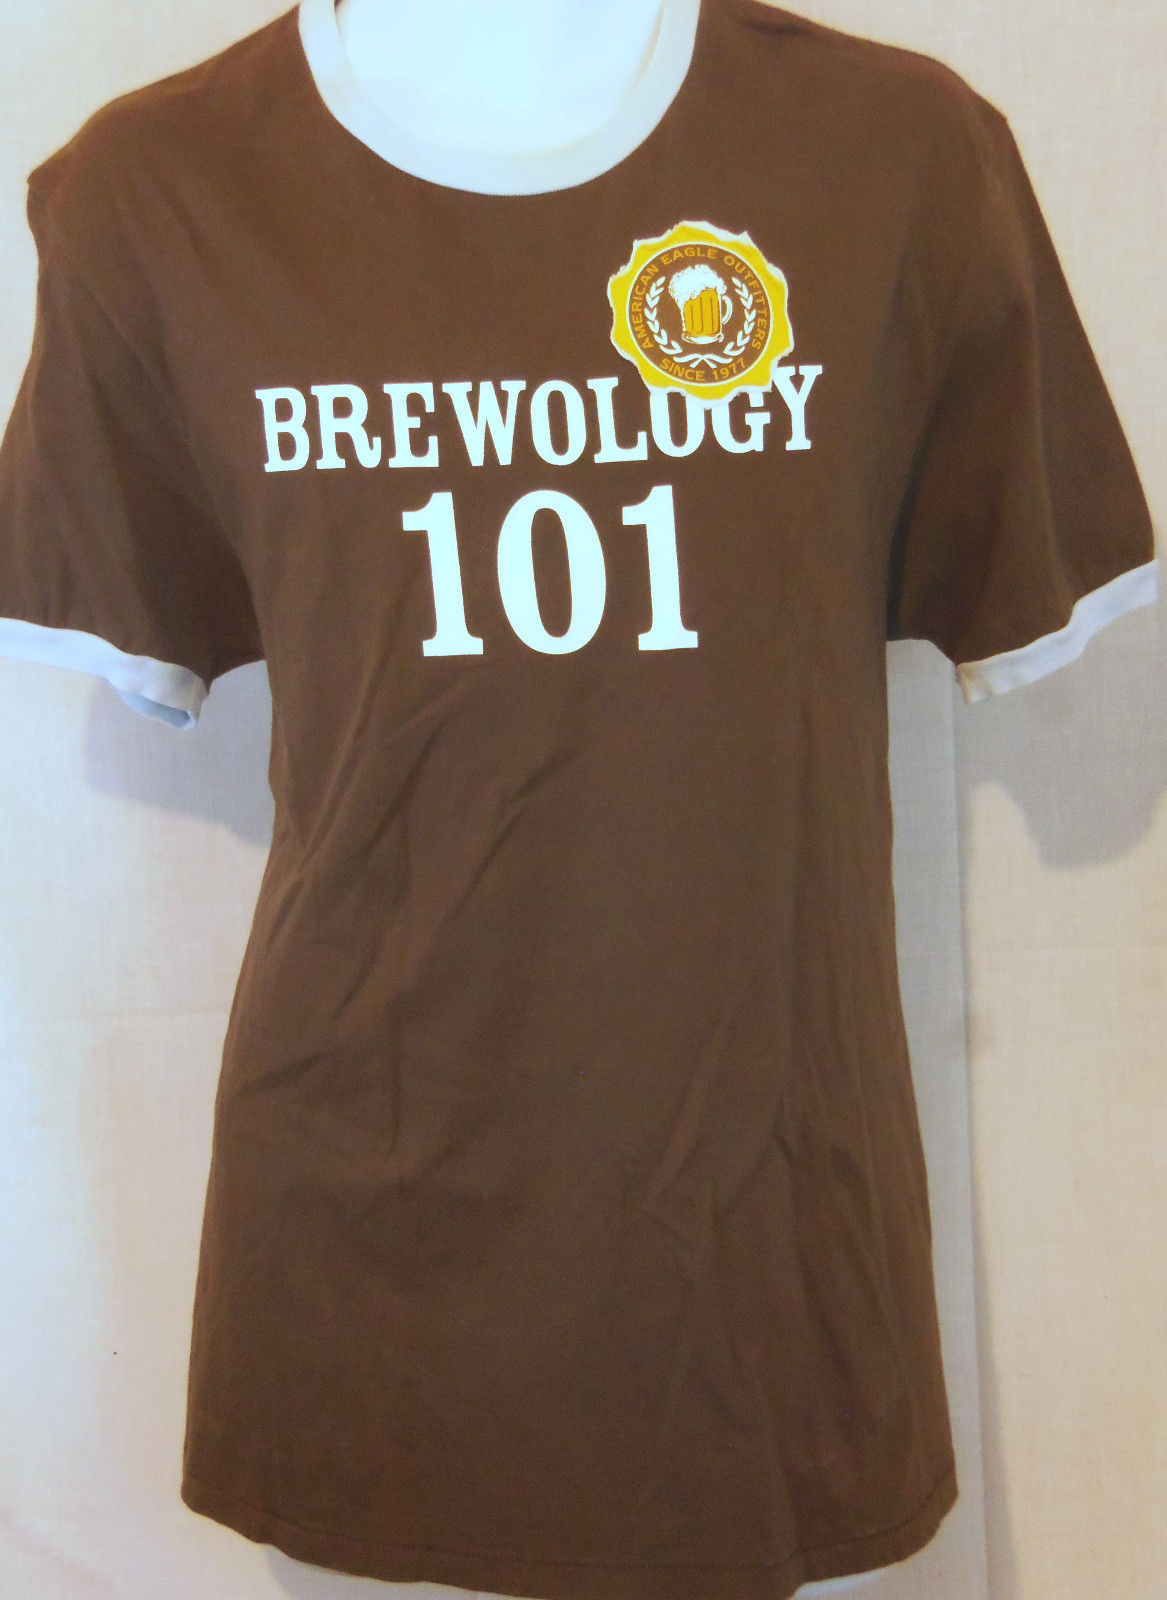 brewology 101 beer art american eagle outfitters brown  size L T shirt